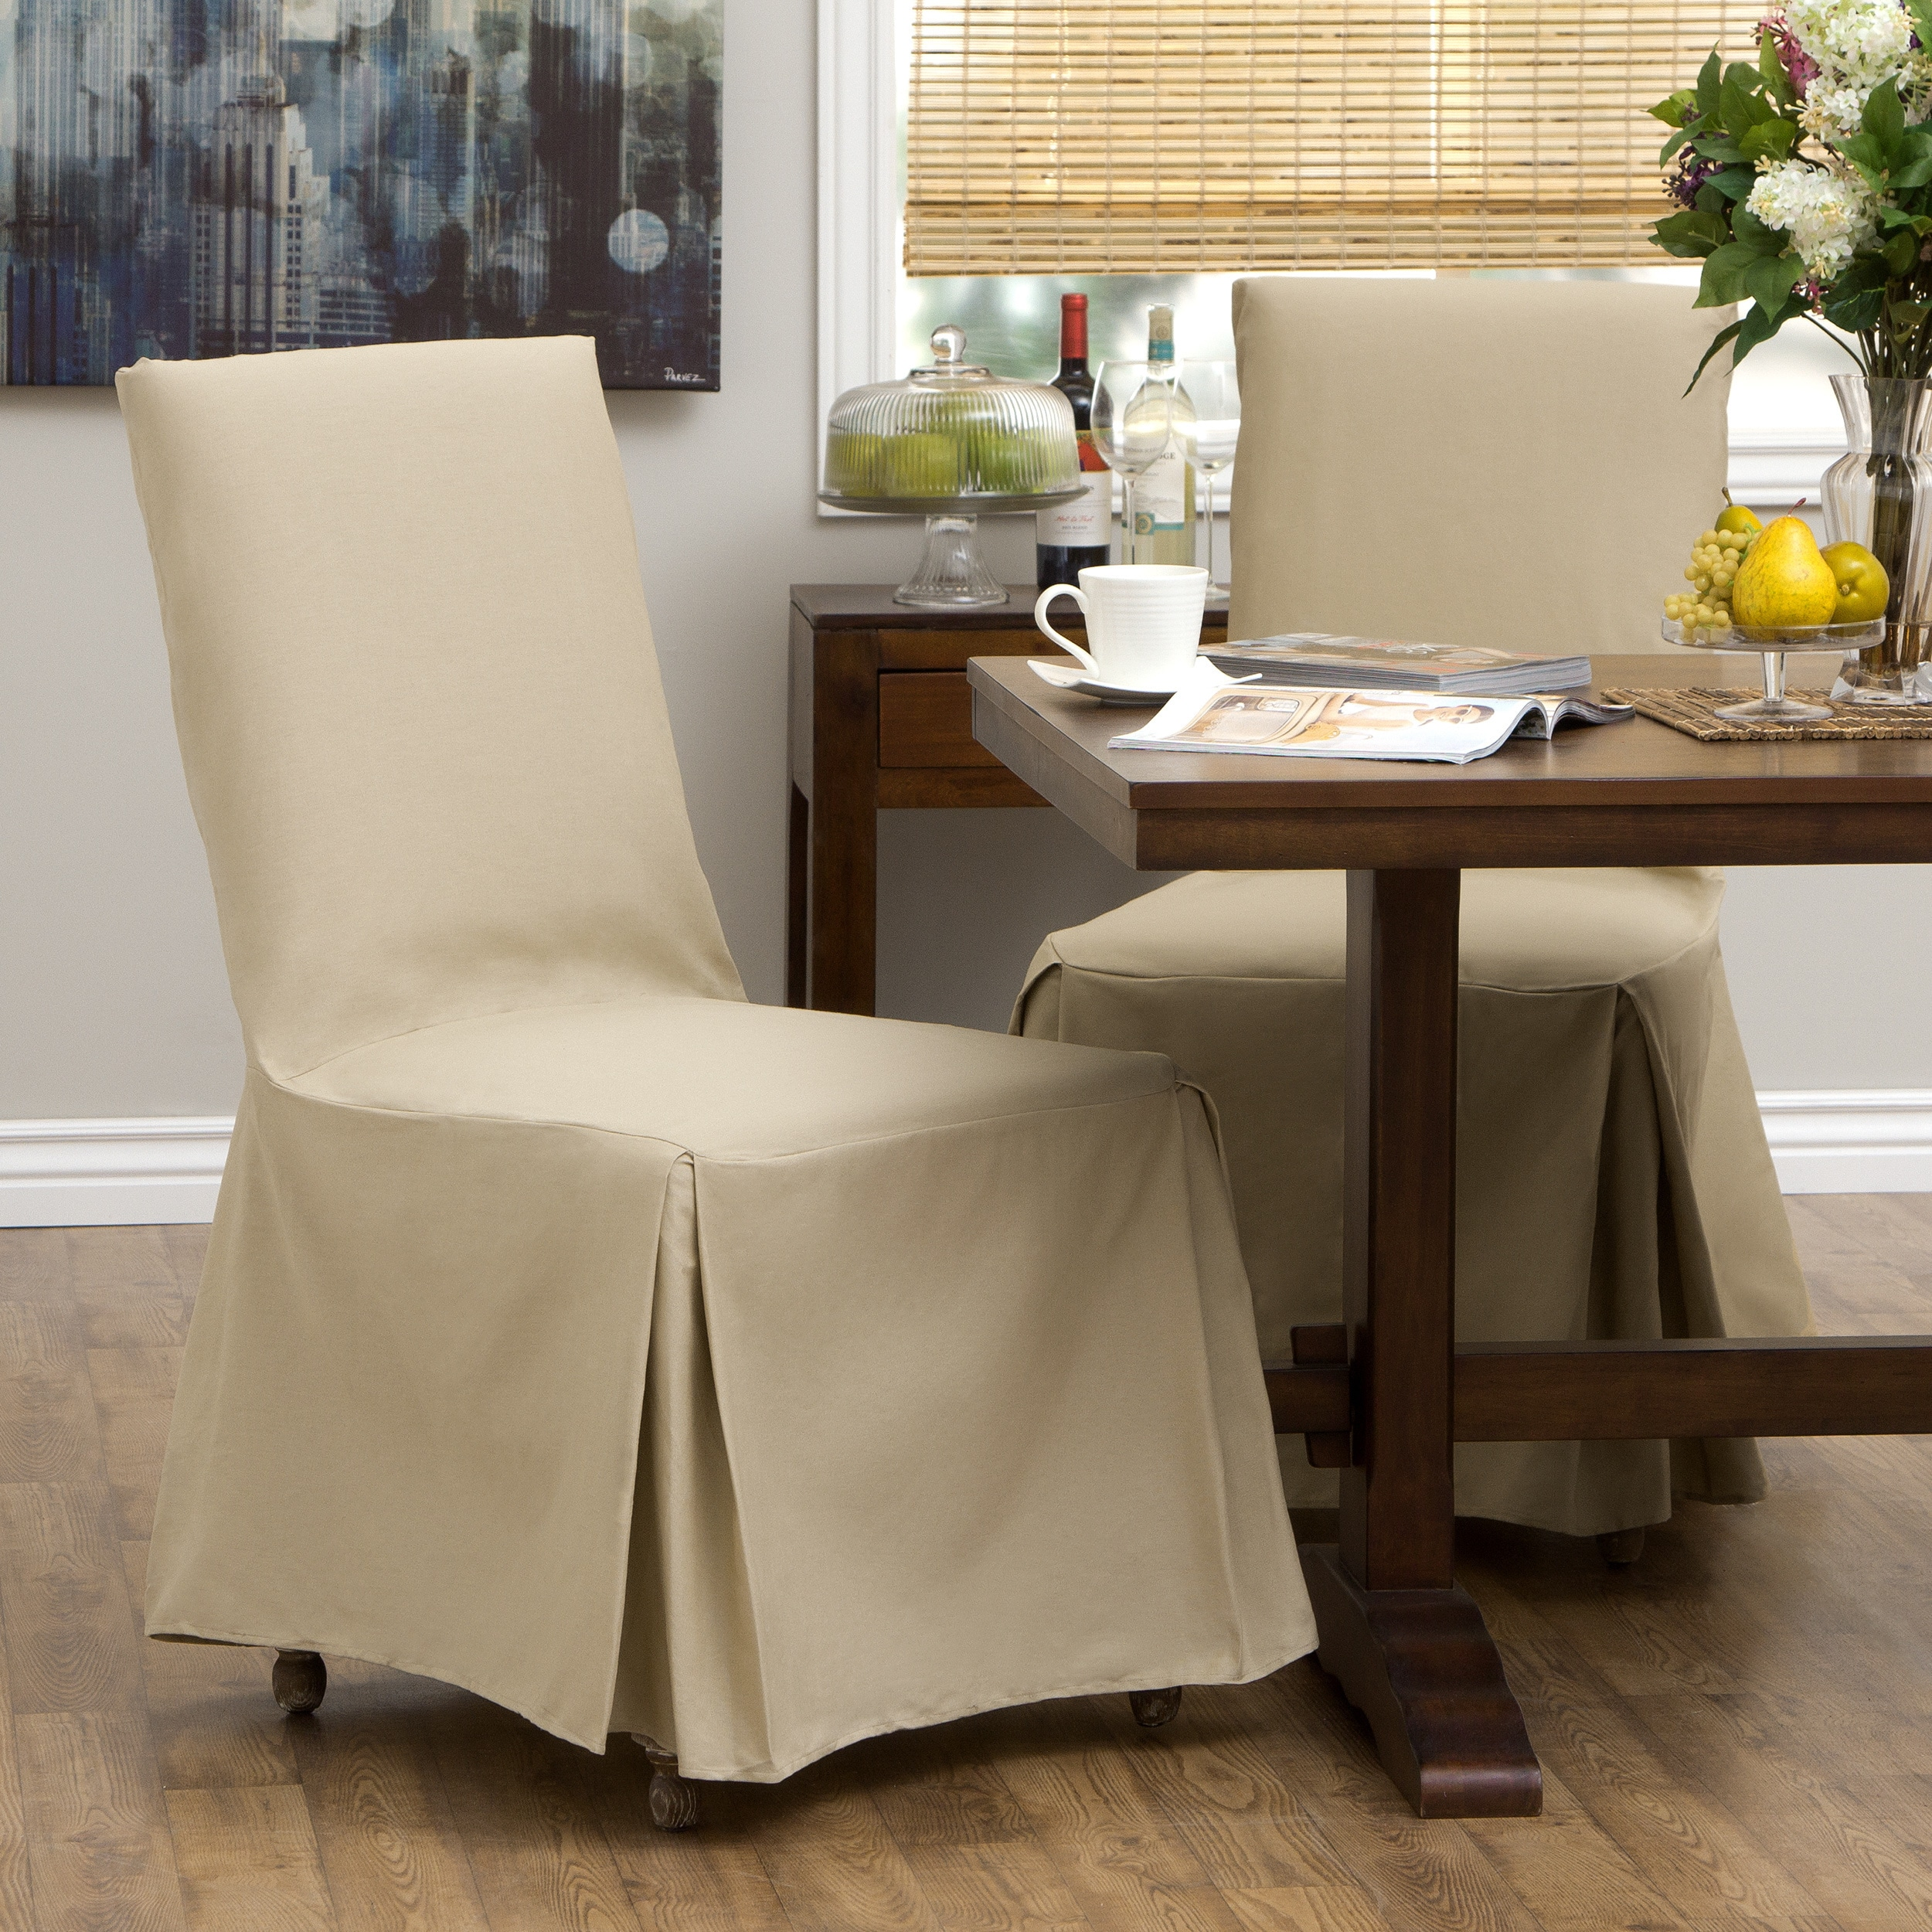 your decoration leg covers graco chair the decor with high slipcovers parsons for wooden tips patio cover sale chairs modern inspiration decorating folding